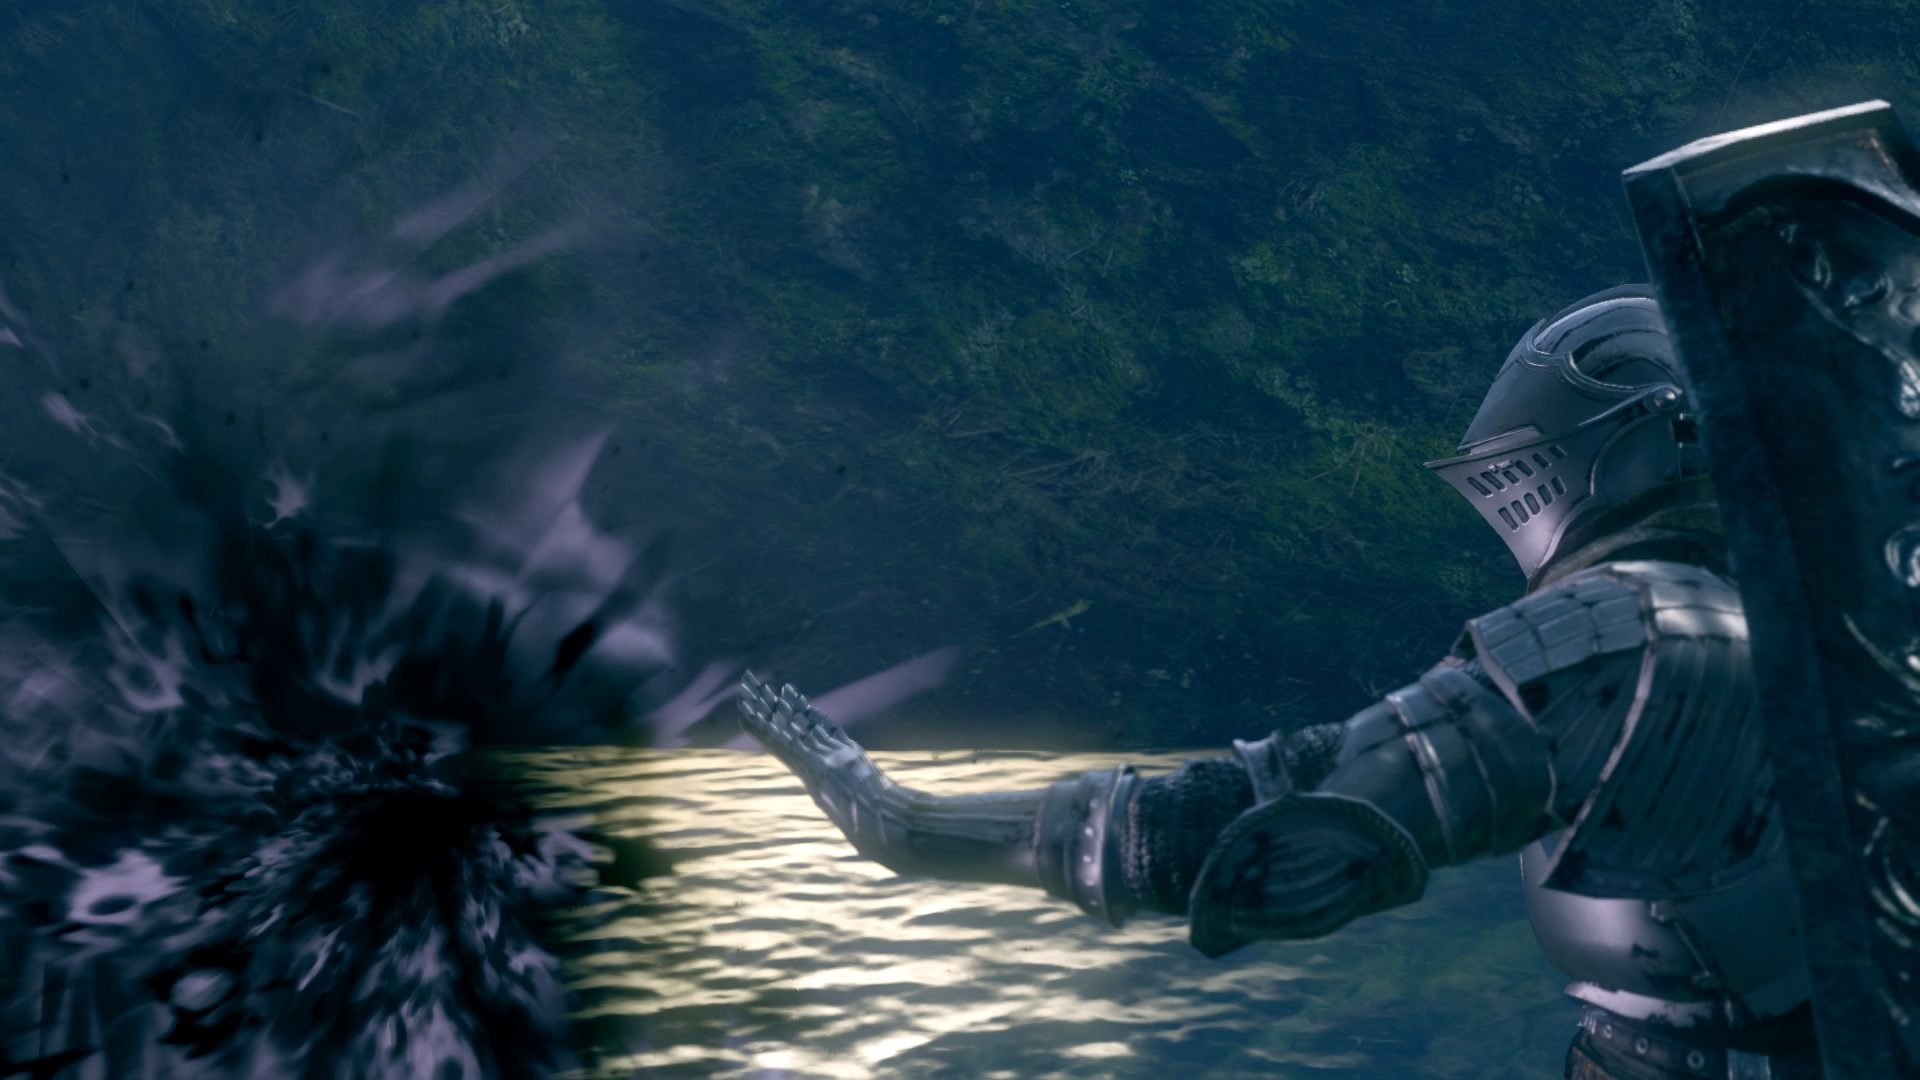 manus father of the abyss dark souls wiki